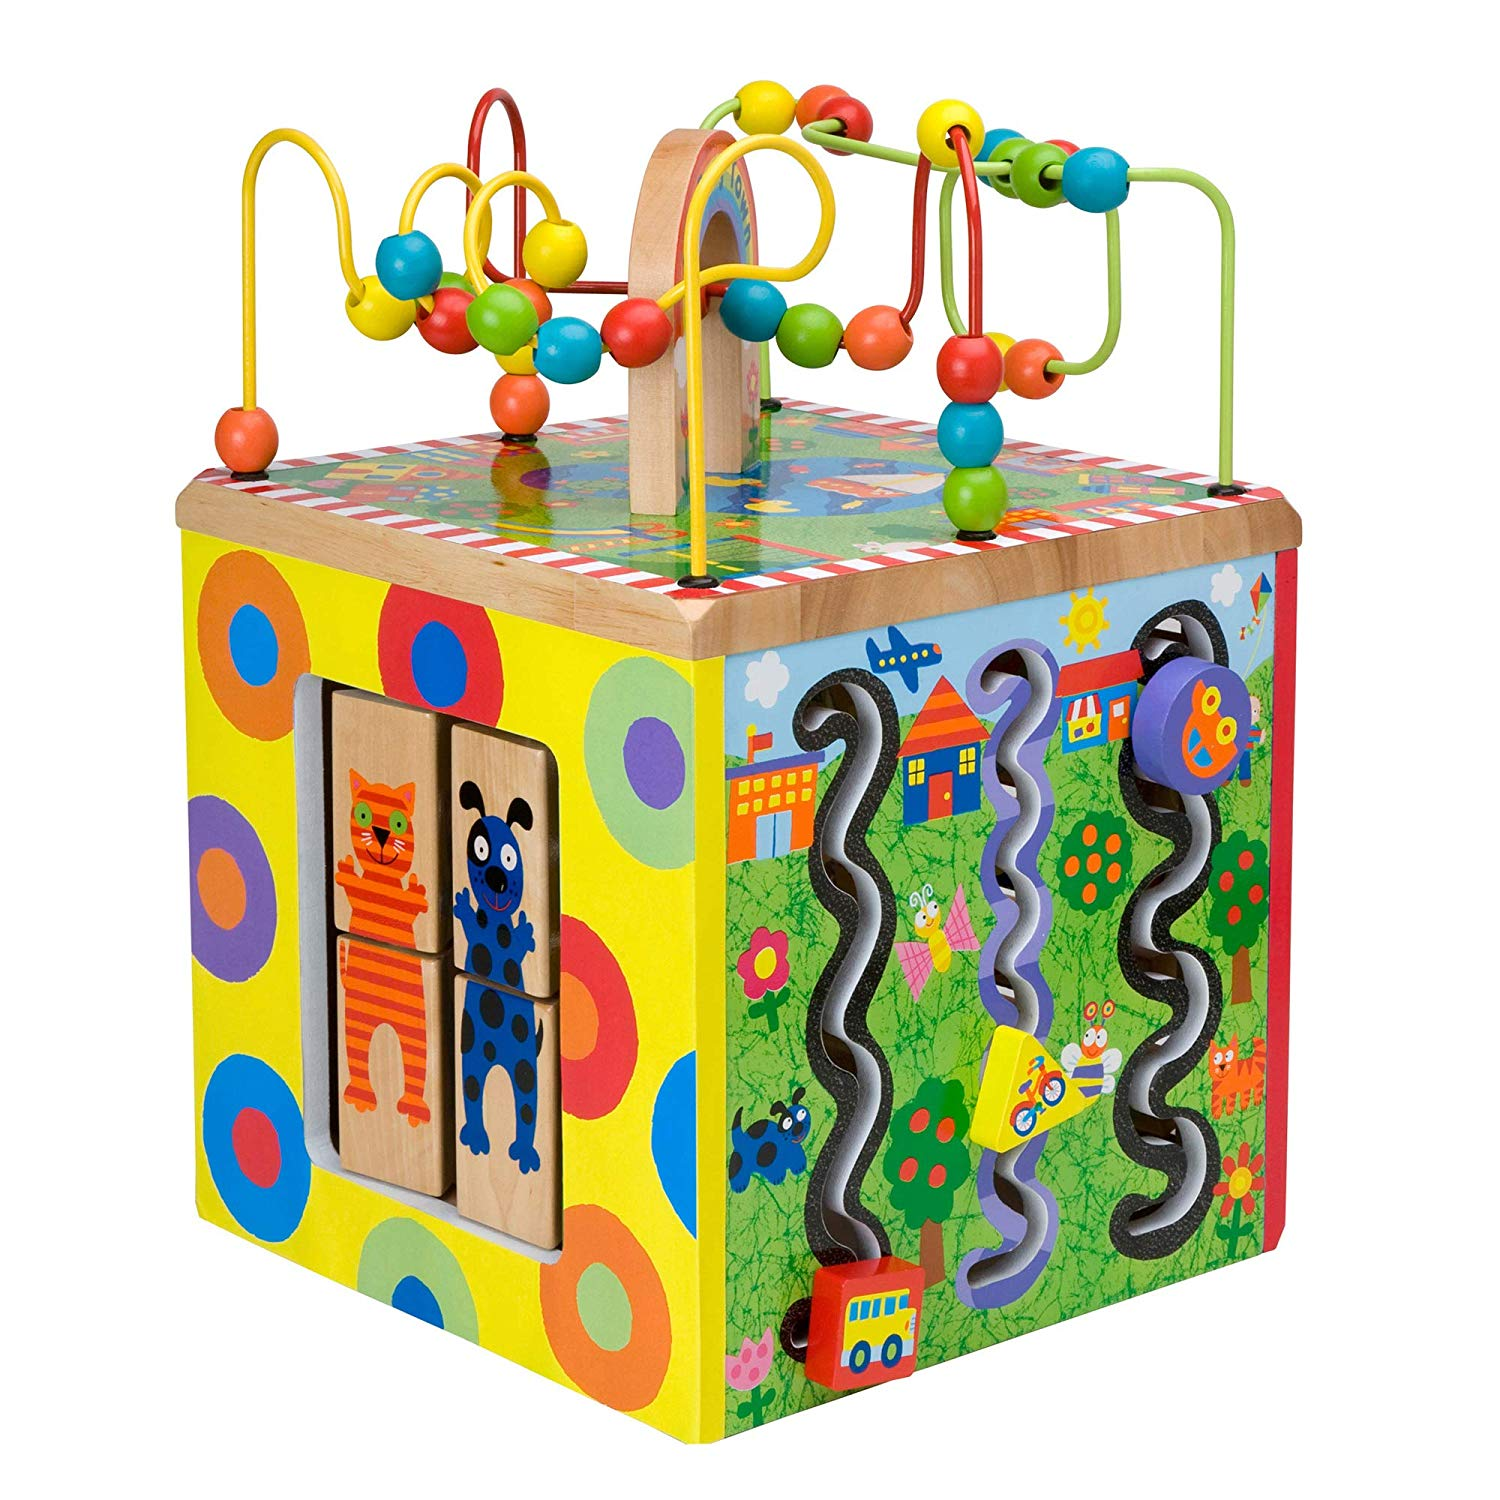 These cubes entertain kiddos for hourss  (okay, not hours, but a pretty long time)